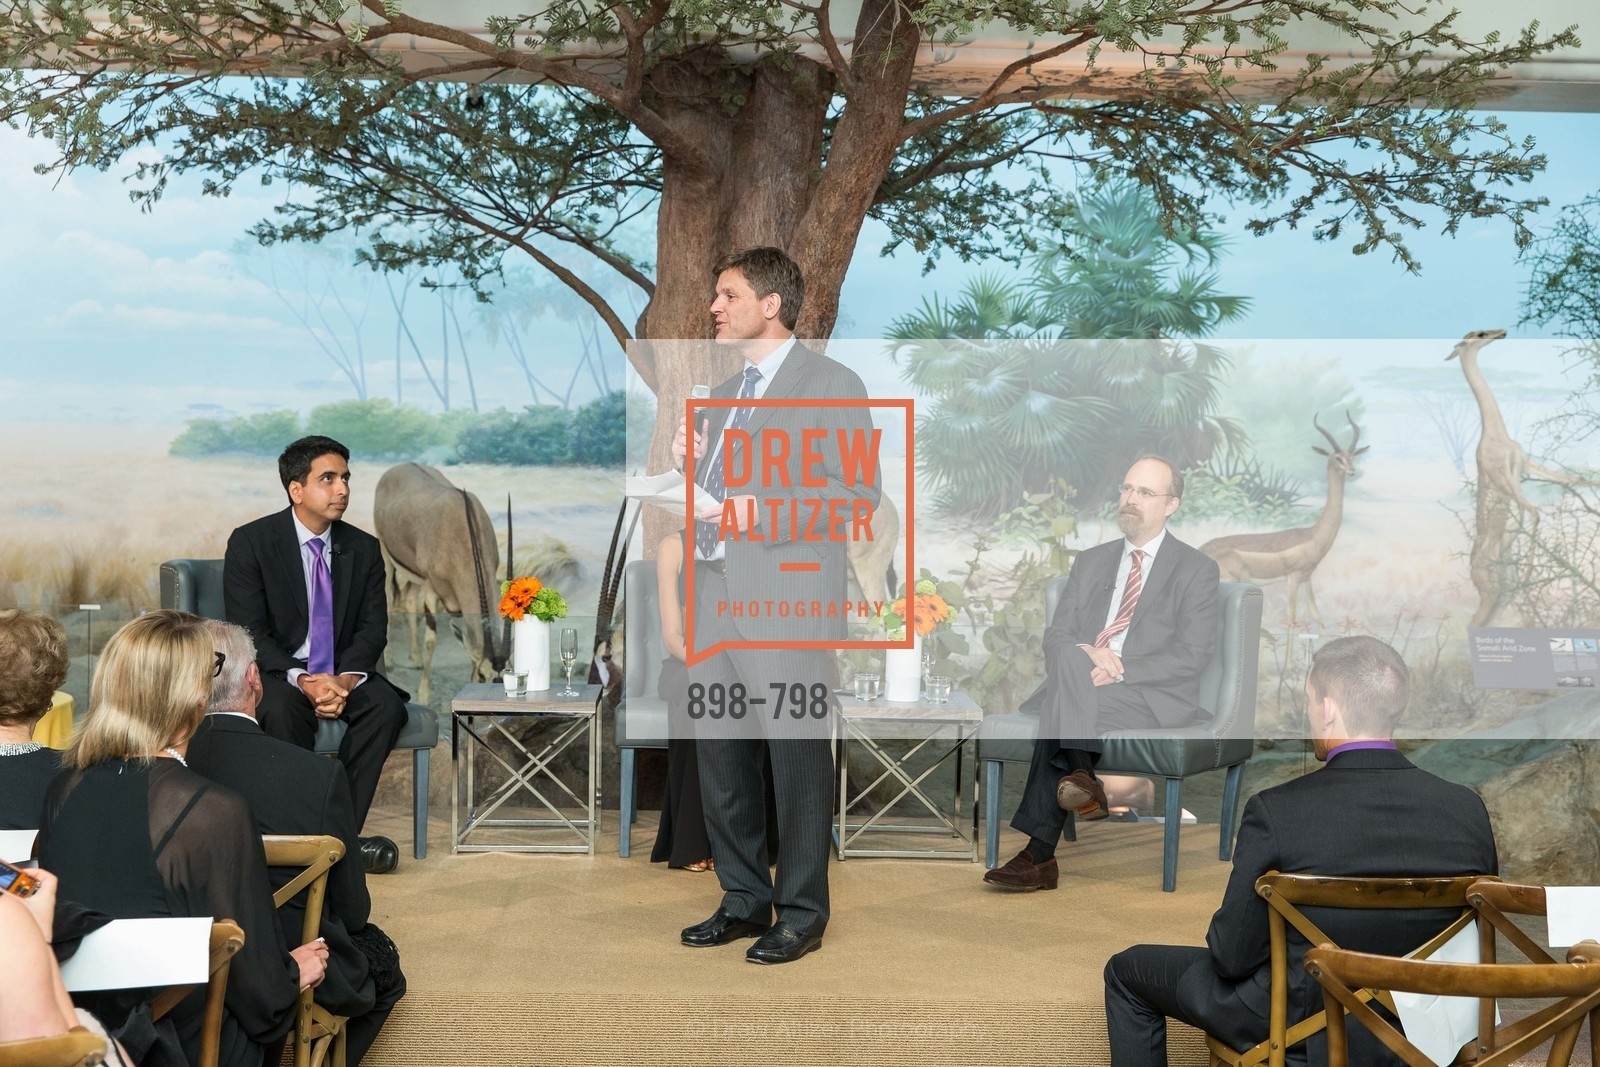 Sal Khan, Bill Duhamel, Adam Messinger, CALIFORNIA ACADEMY OF SCIENCES - Big Bang Gala 2015, US, April 24th, 2015,Drew Altizer, Drew Altizer Photography, full-service event agency, private events, San Francisco photographer, photographer California